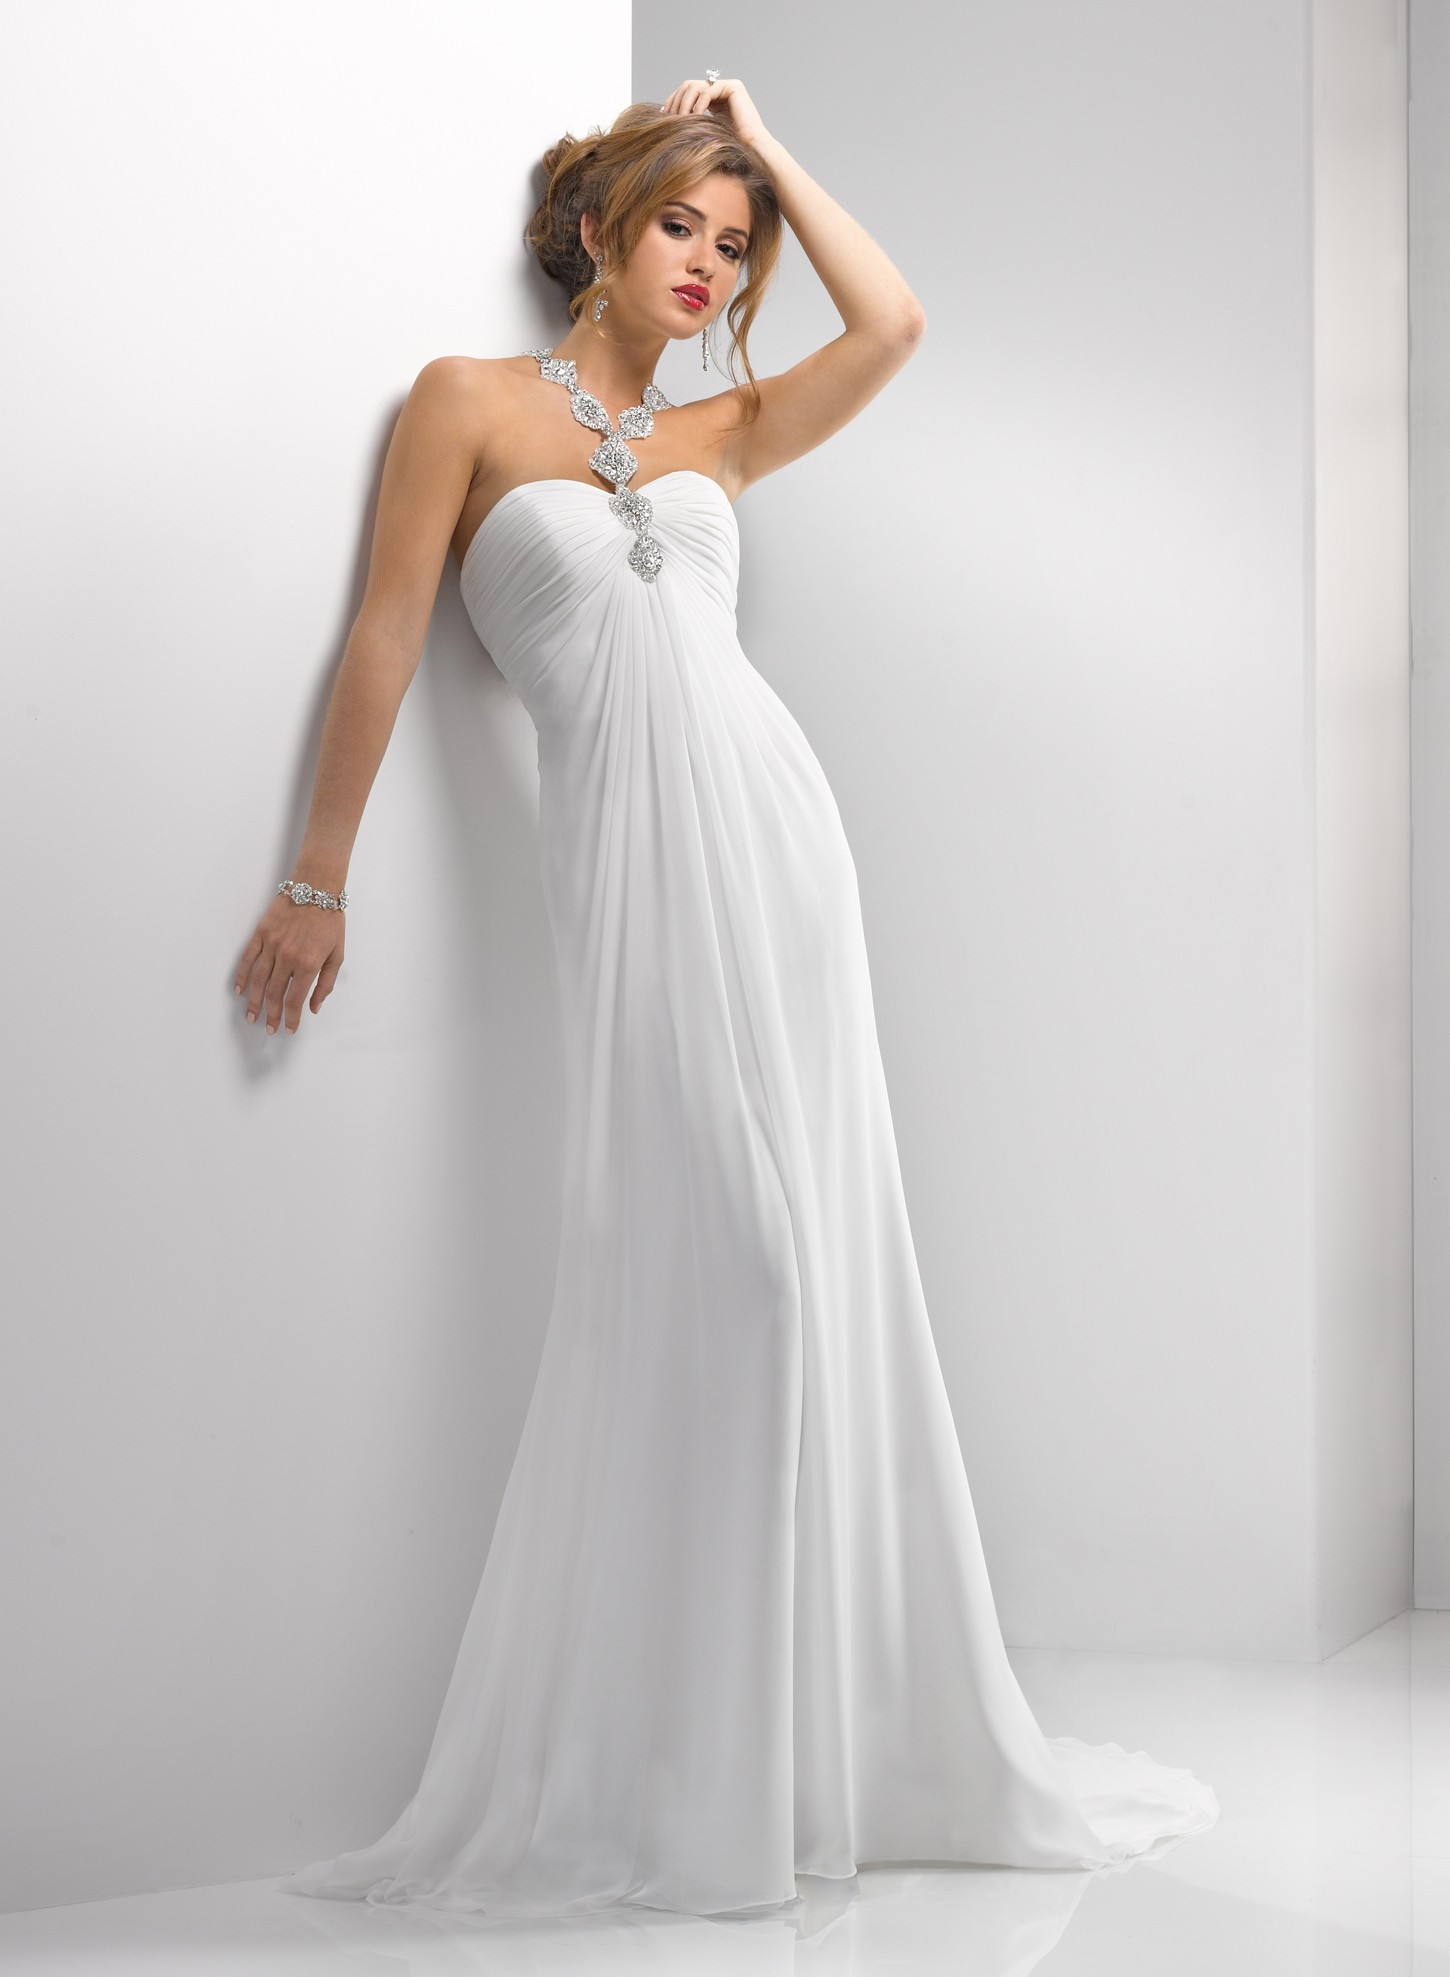 Petite wedding dress tips for our lovely petite girls for Petite bride wedding dress